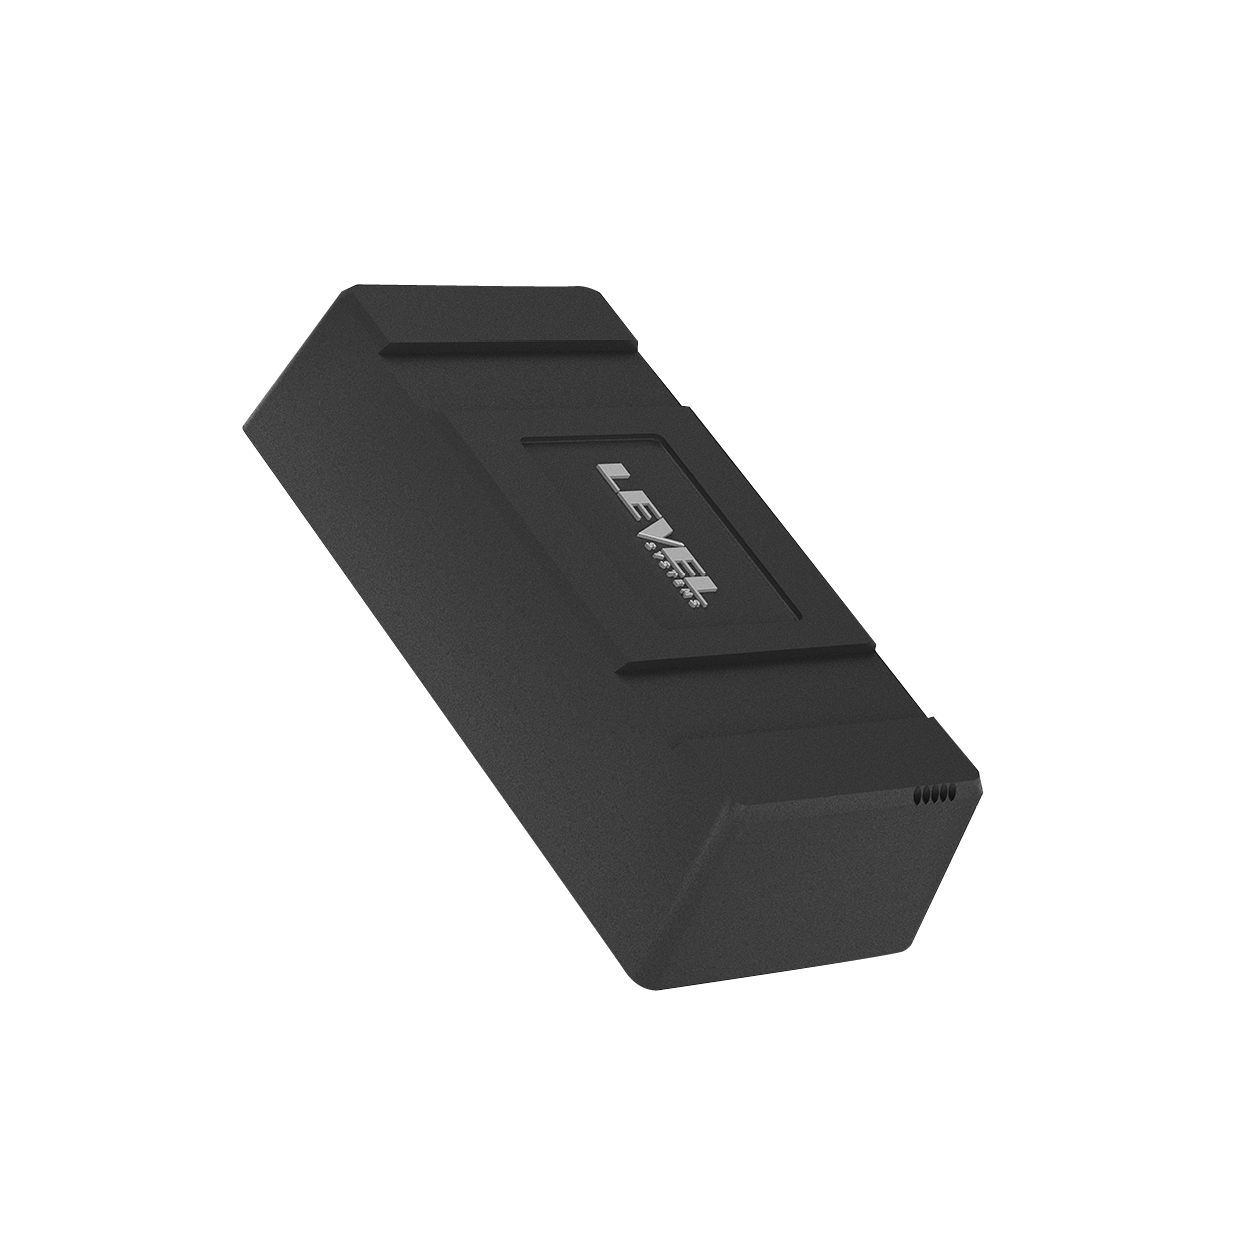 Multisensor is a tiny sensor able to measure a wide range of values.